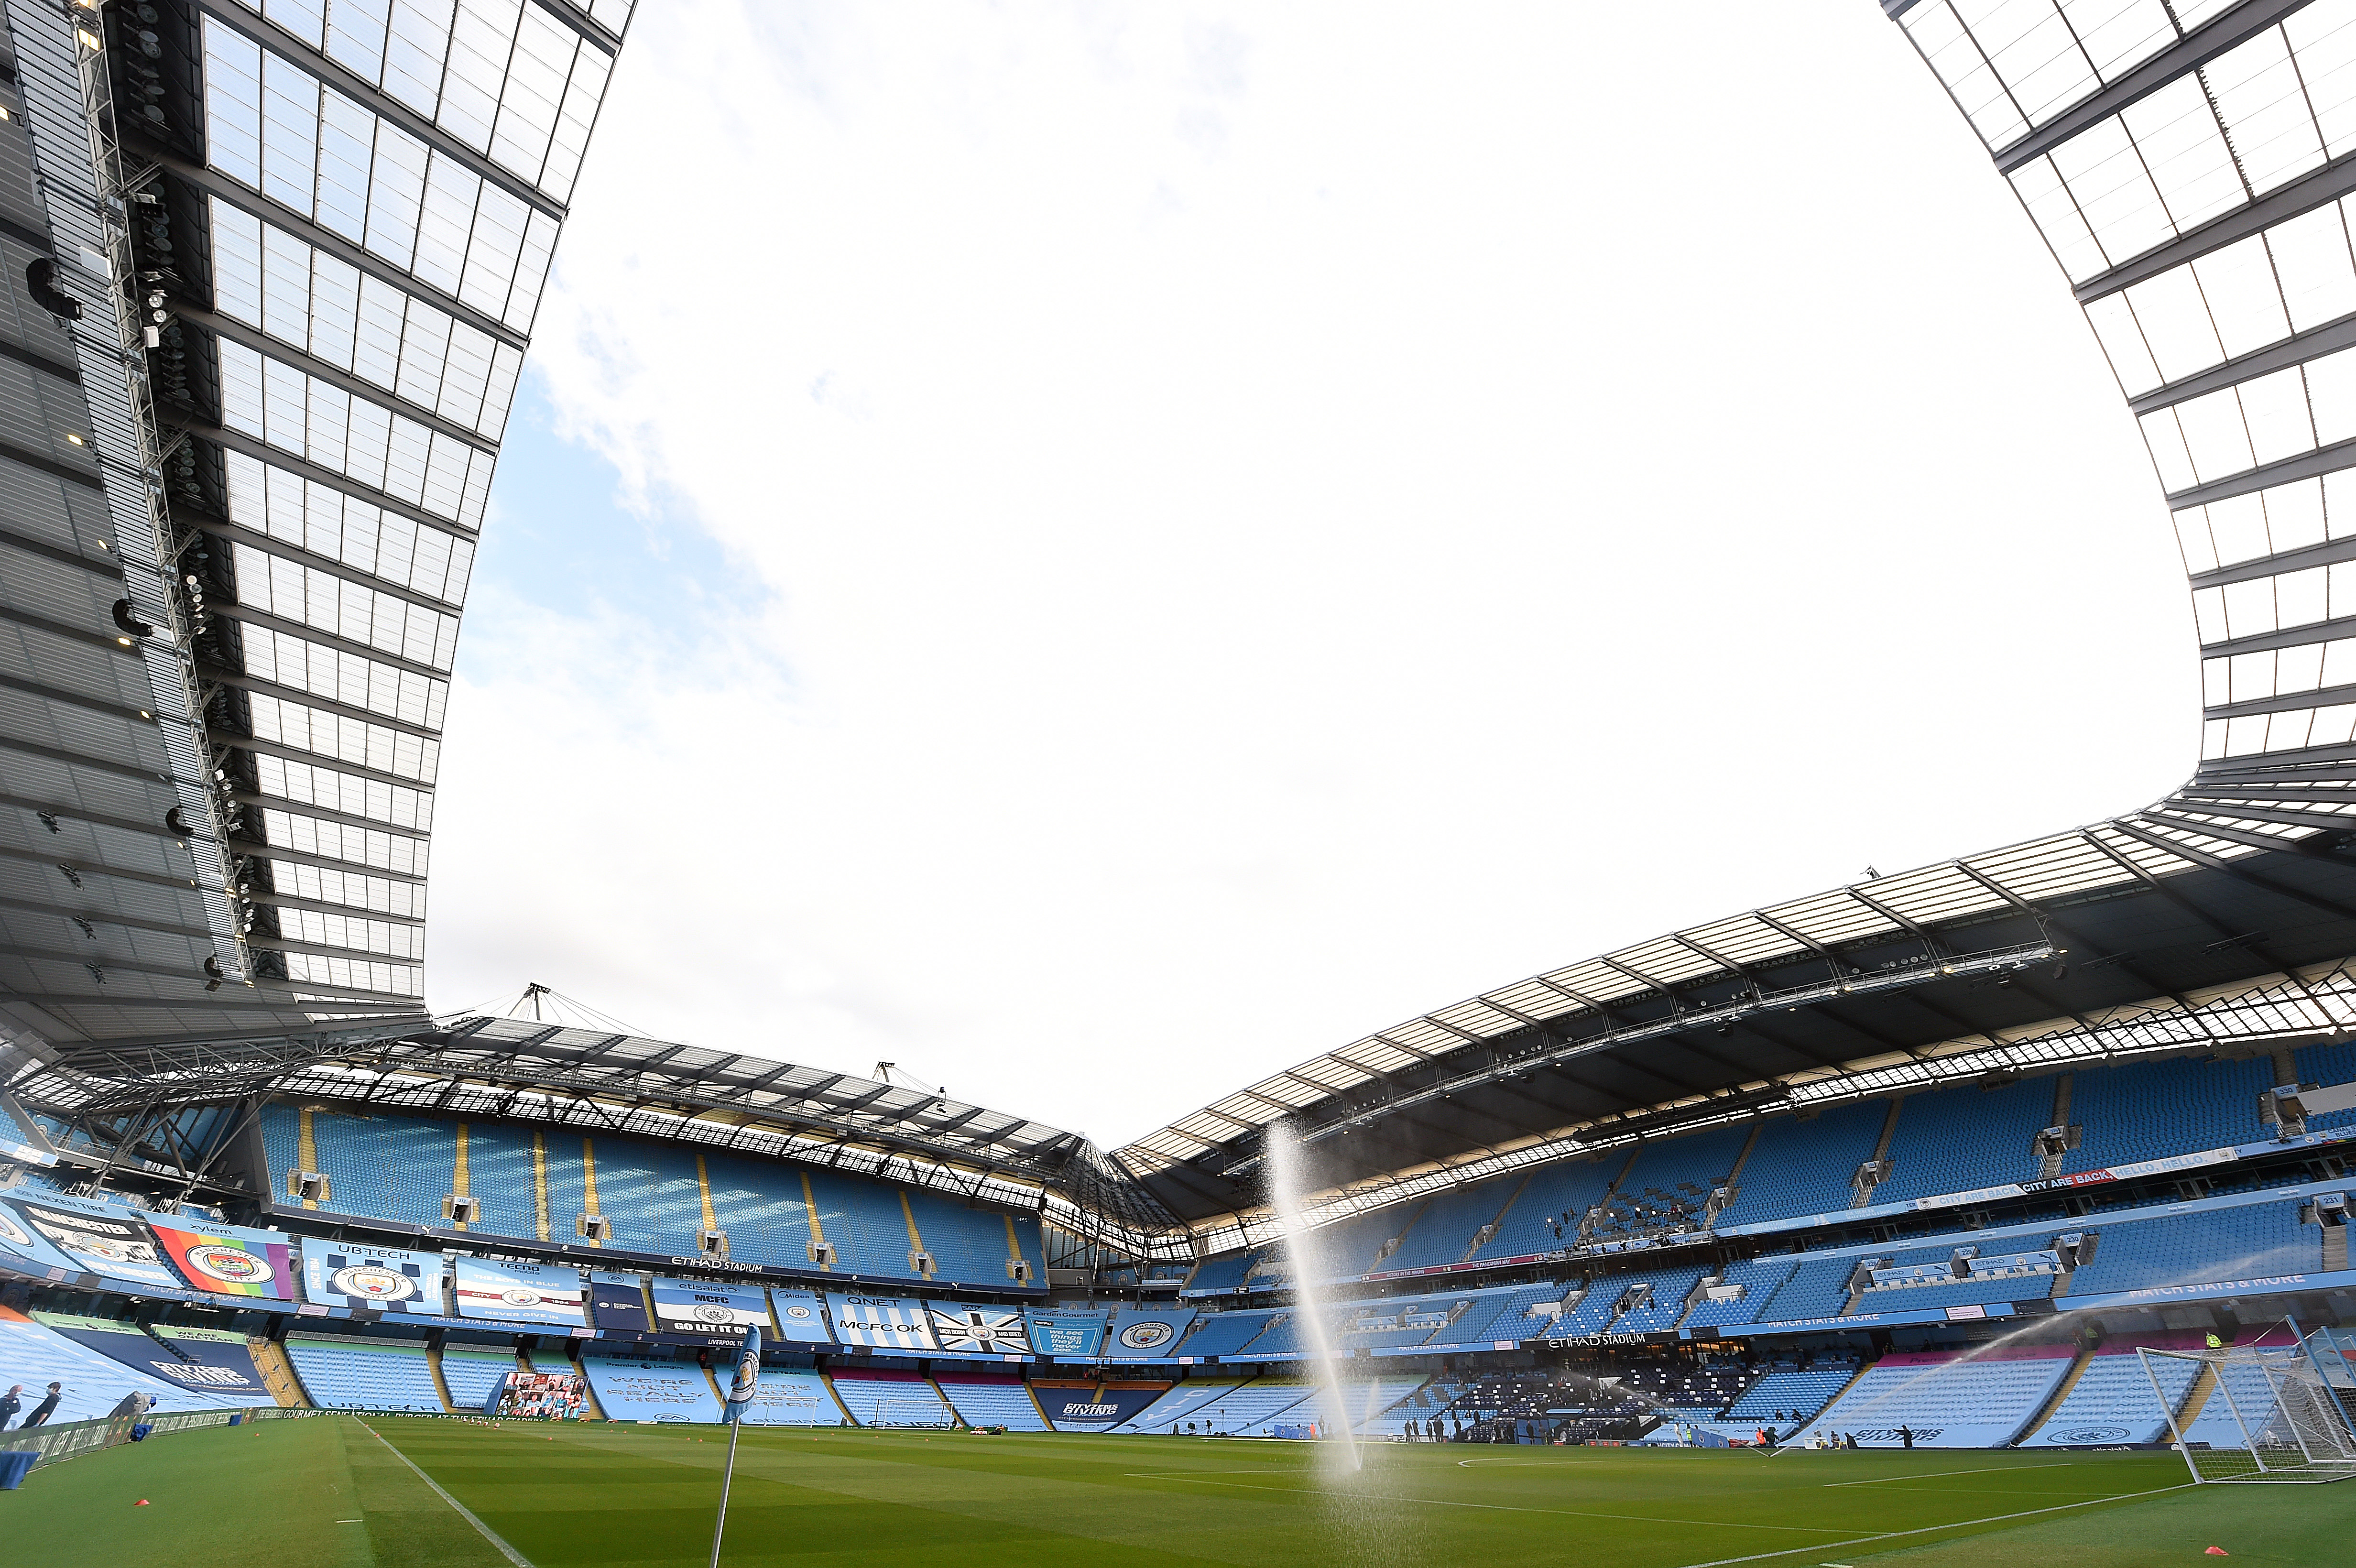 Man City vs Real Madrid Champions League clash set for Etihad, Manchester United and Wolves will also play thumbnail